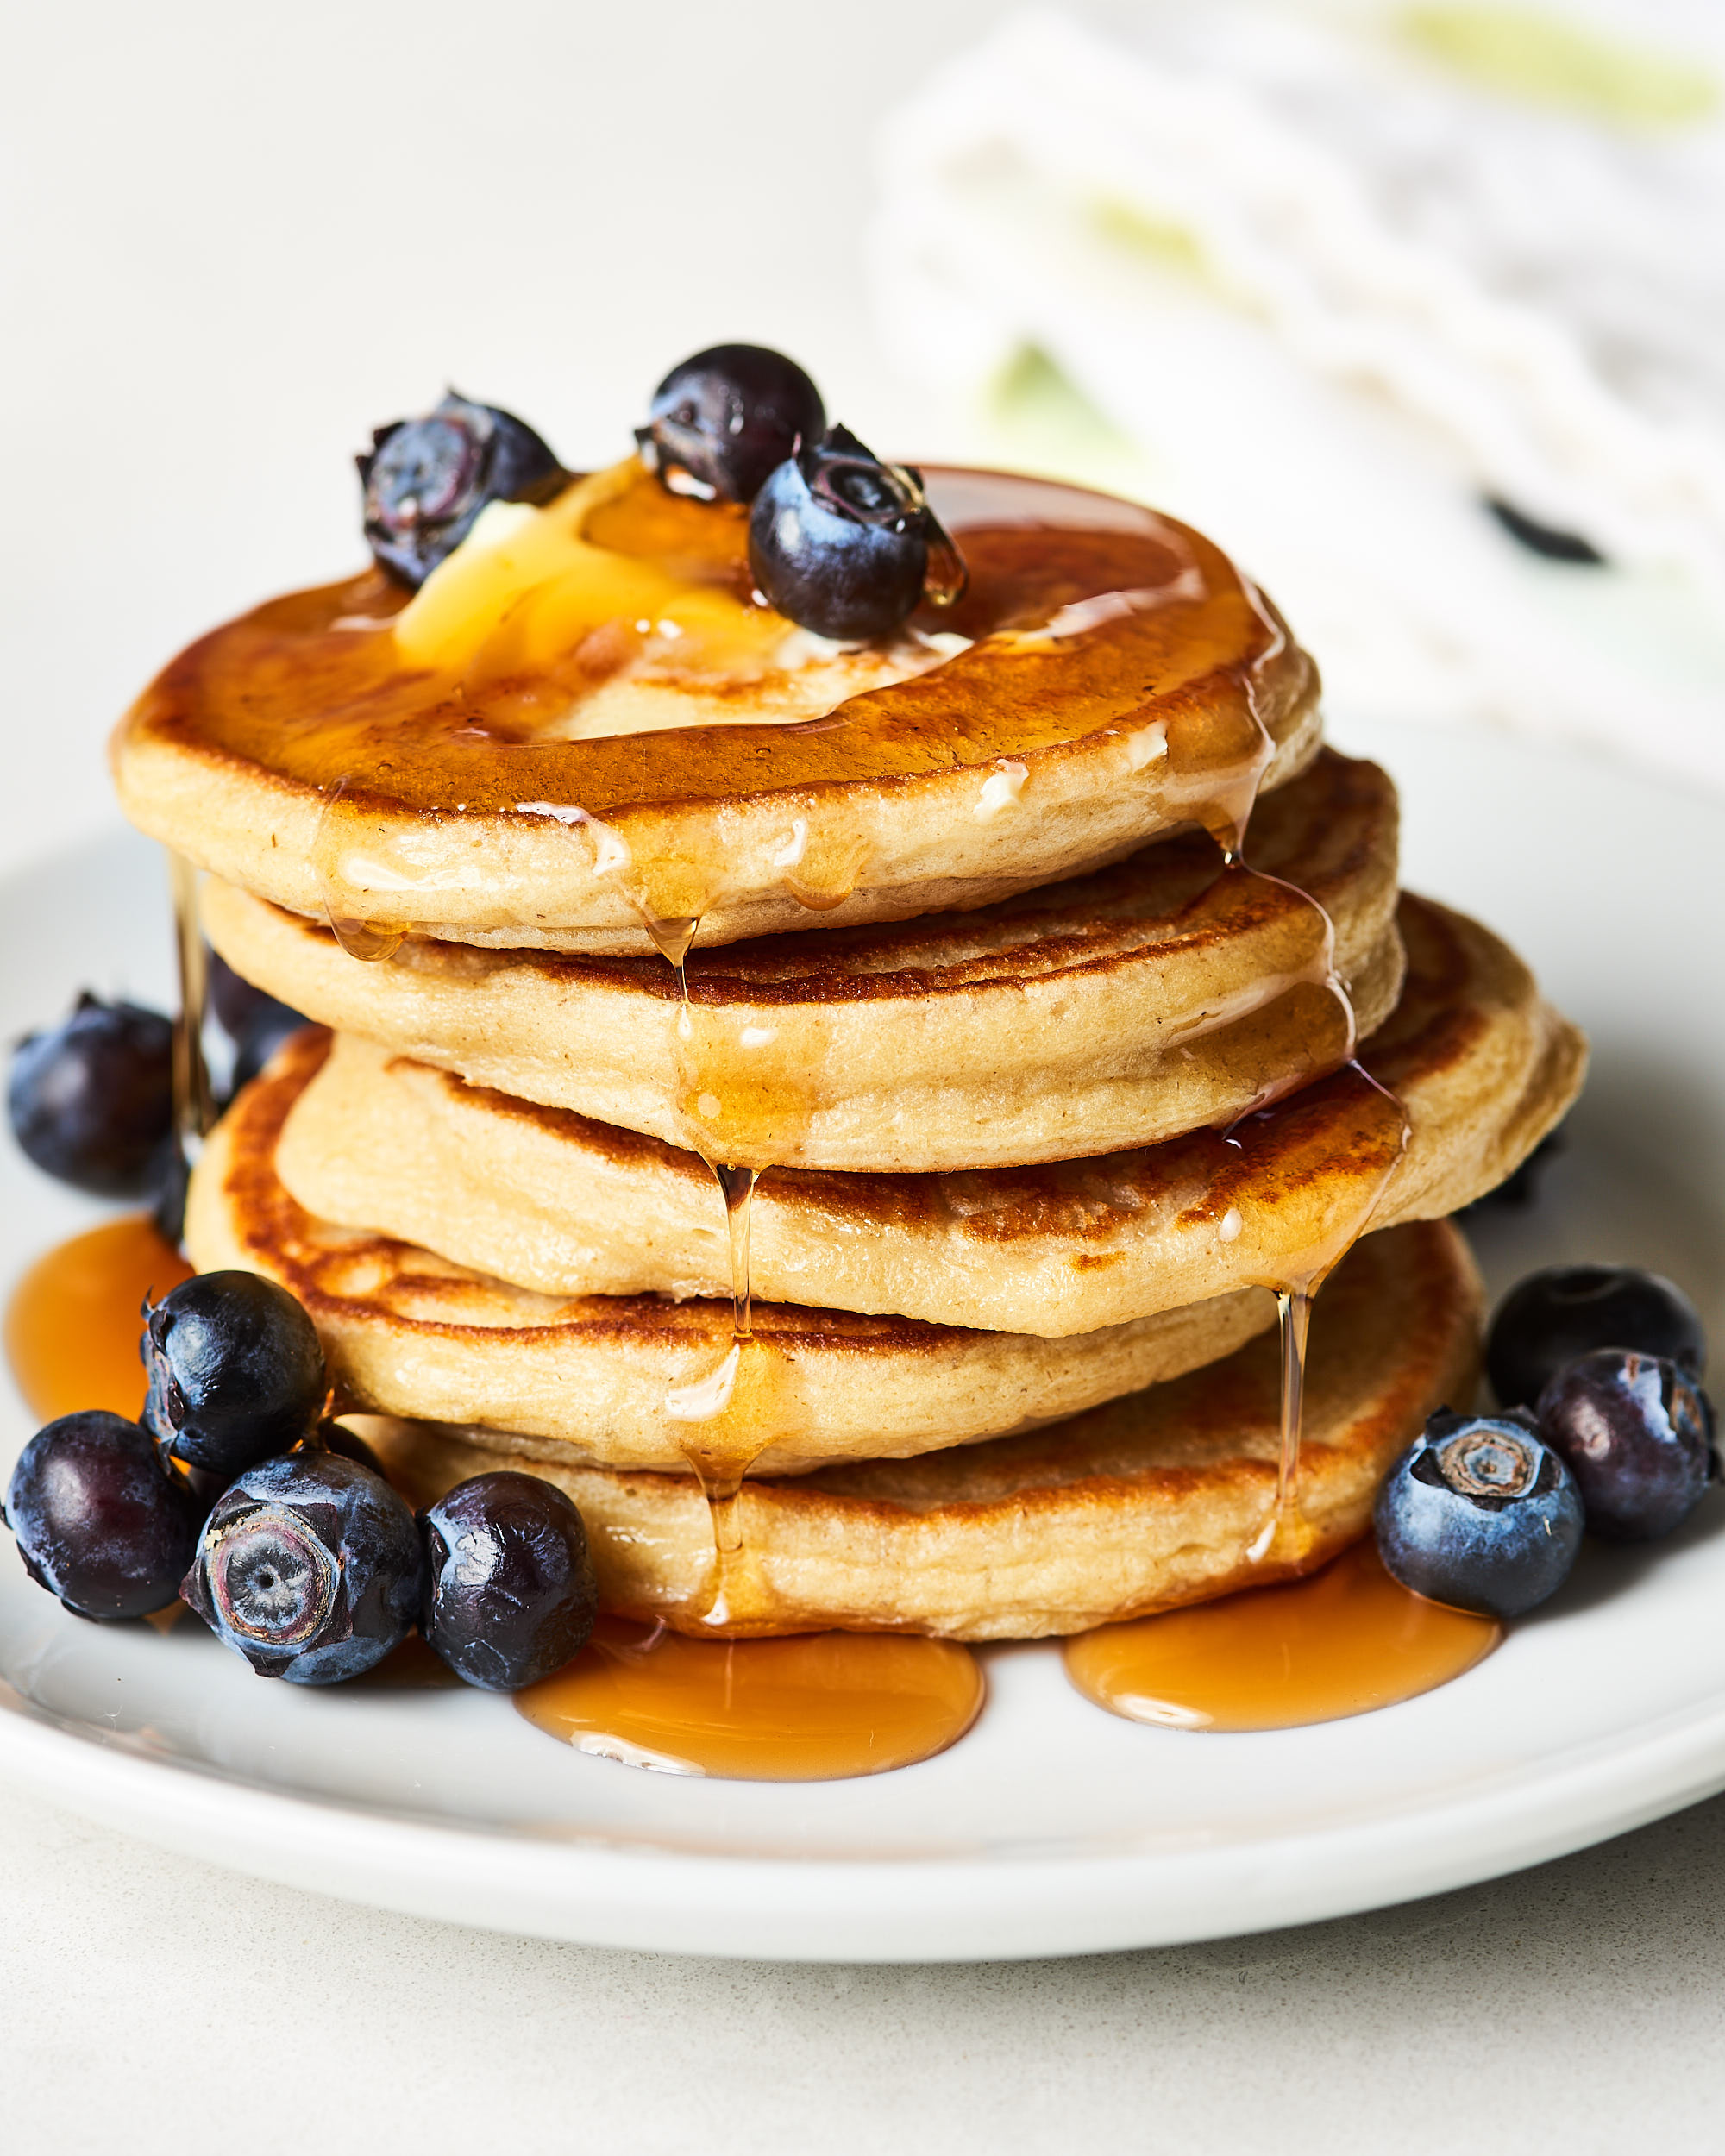 Outstanding 3 Ingredient Cottage Cheese Pancakes Download Free Architecture Designs Intelgarnamadebymaigaardcom